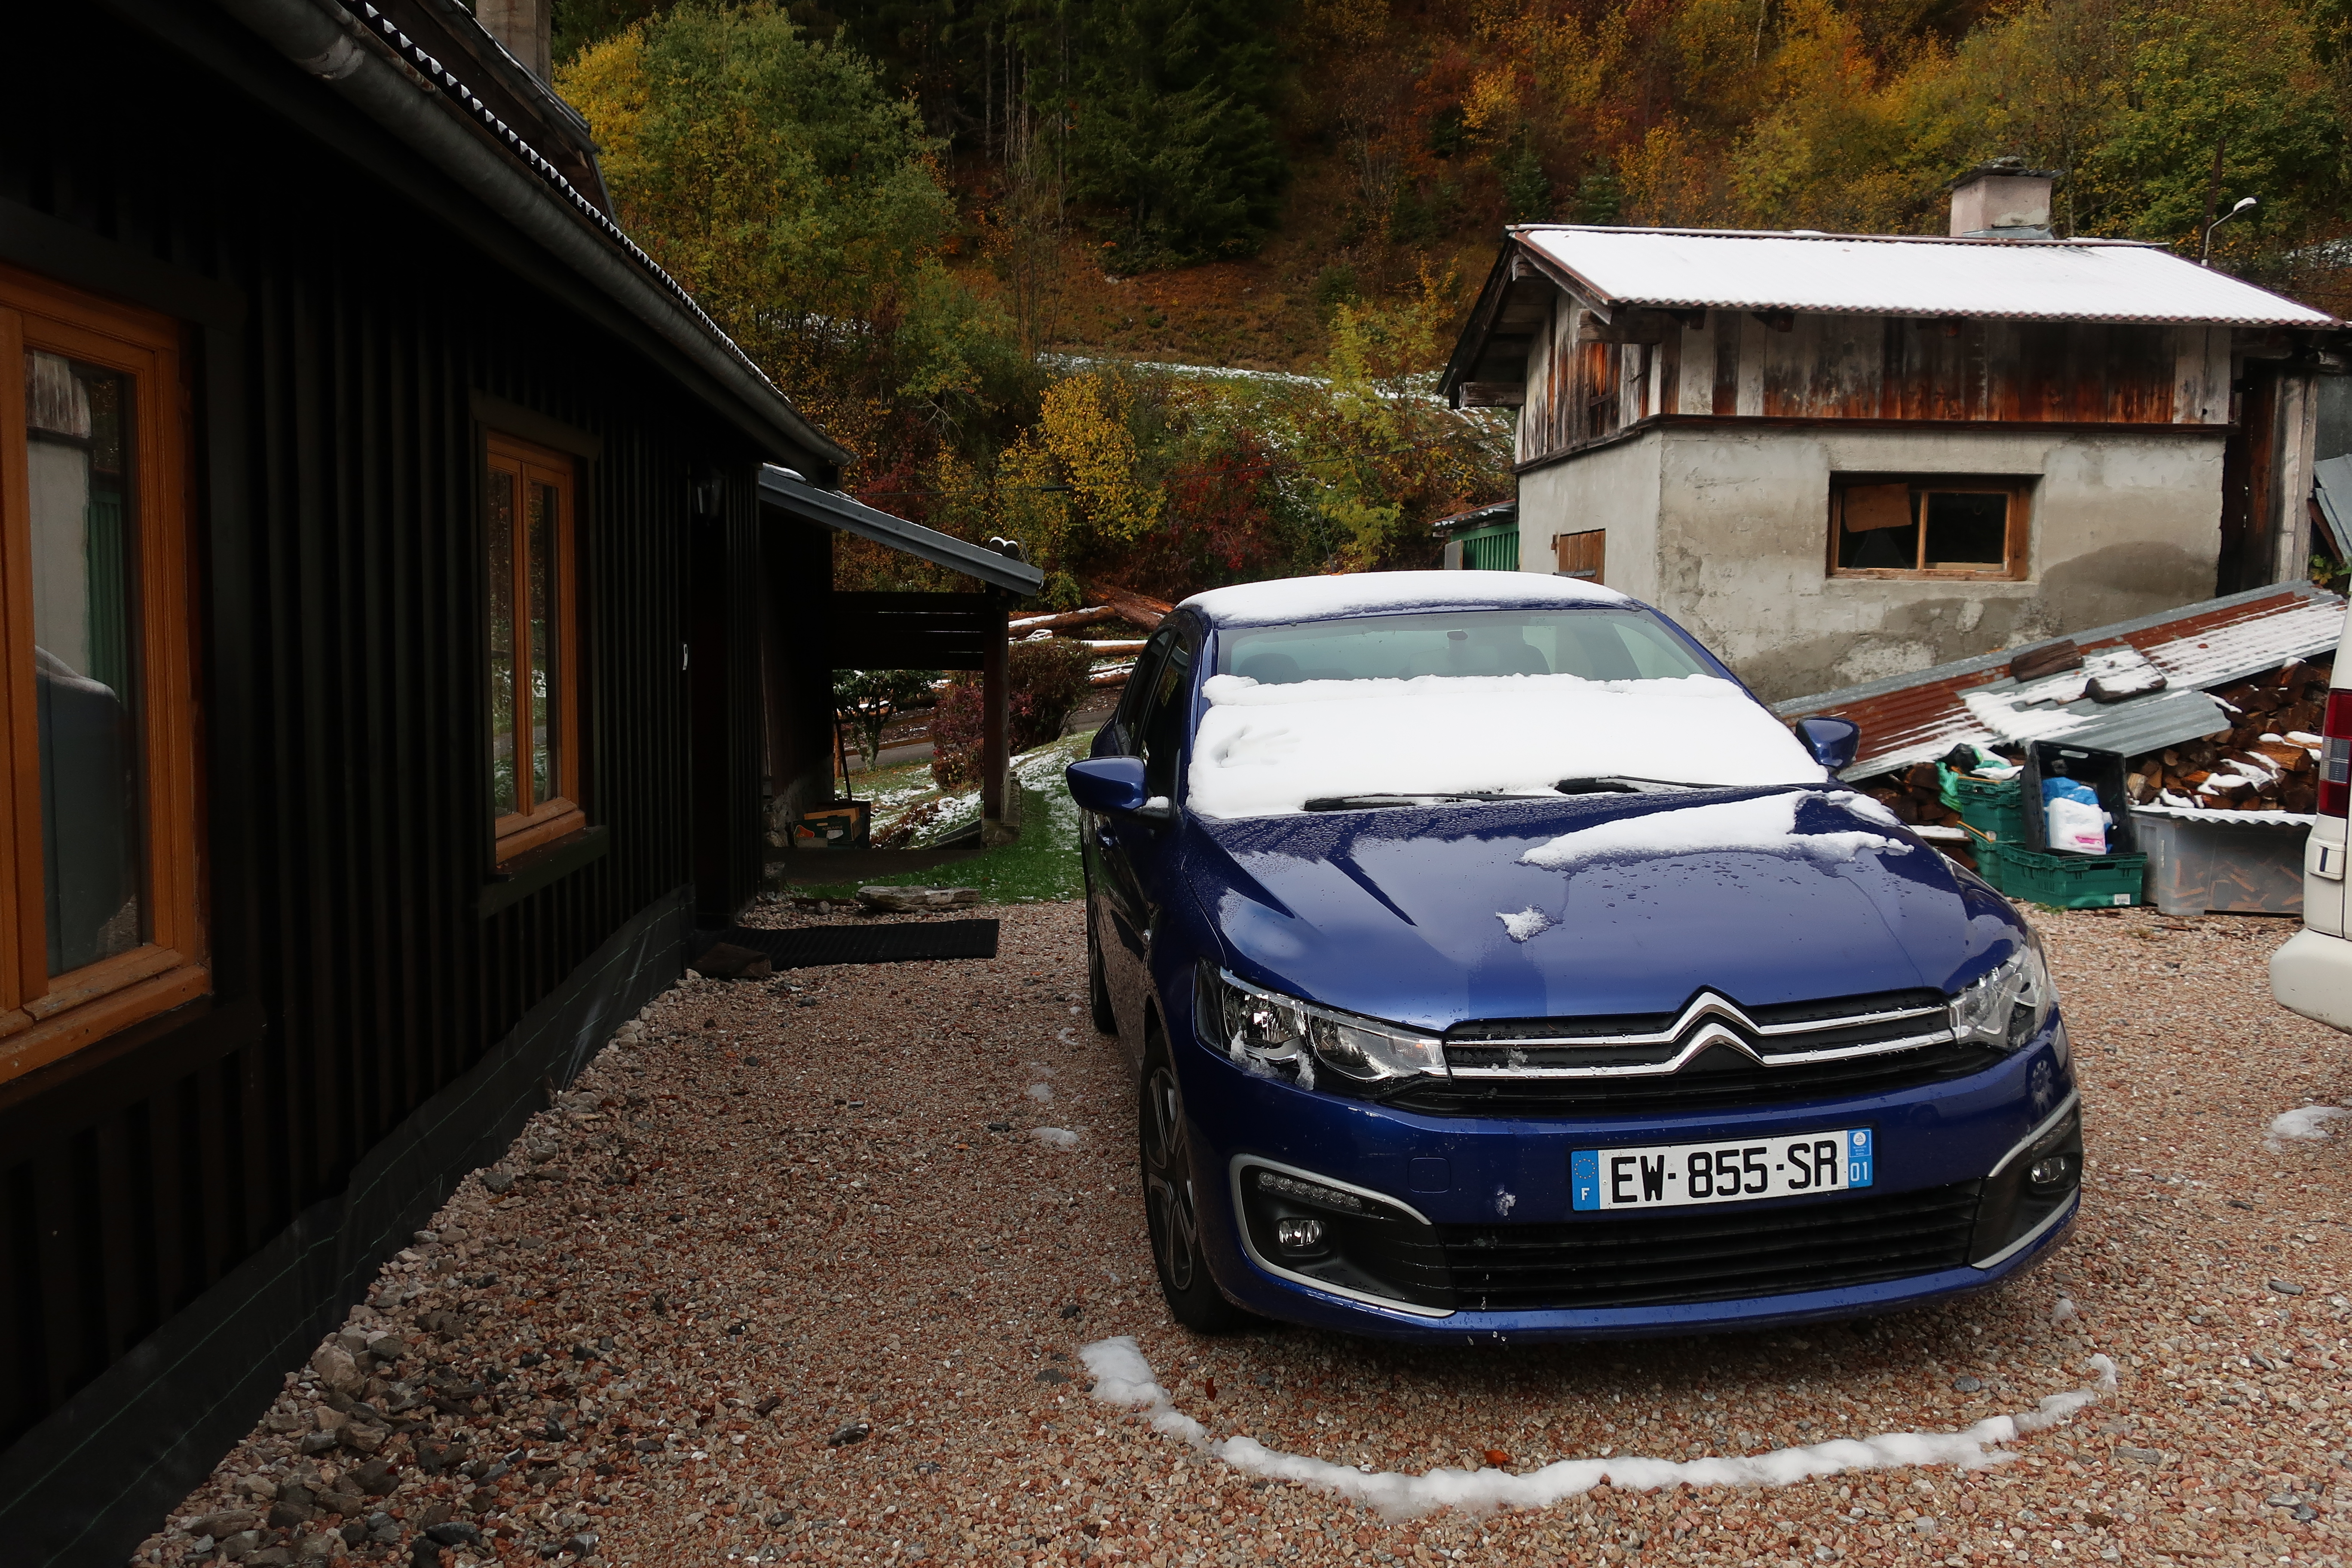 A Somewhat Serious Review Of Our Rental Car A 2018 Citroen C Elysee M4 Travels